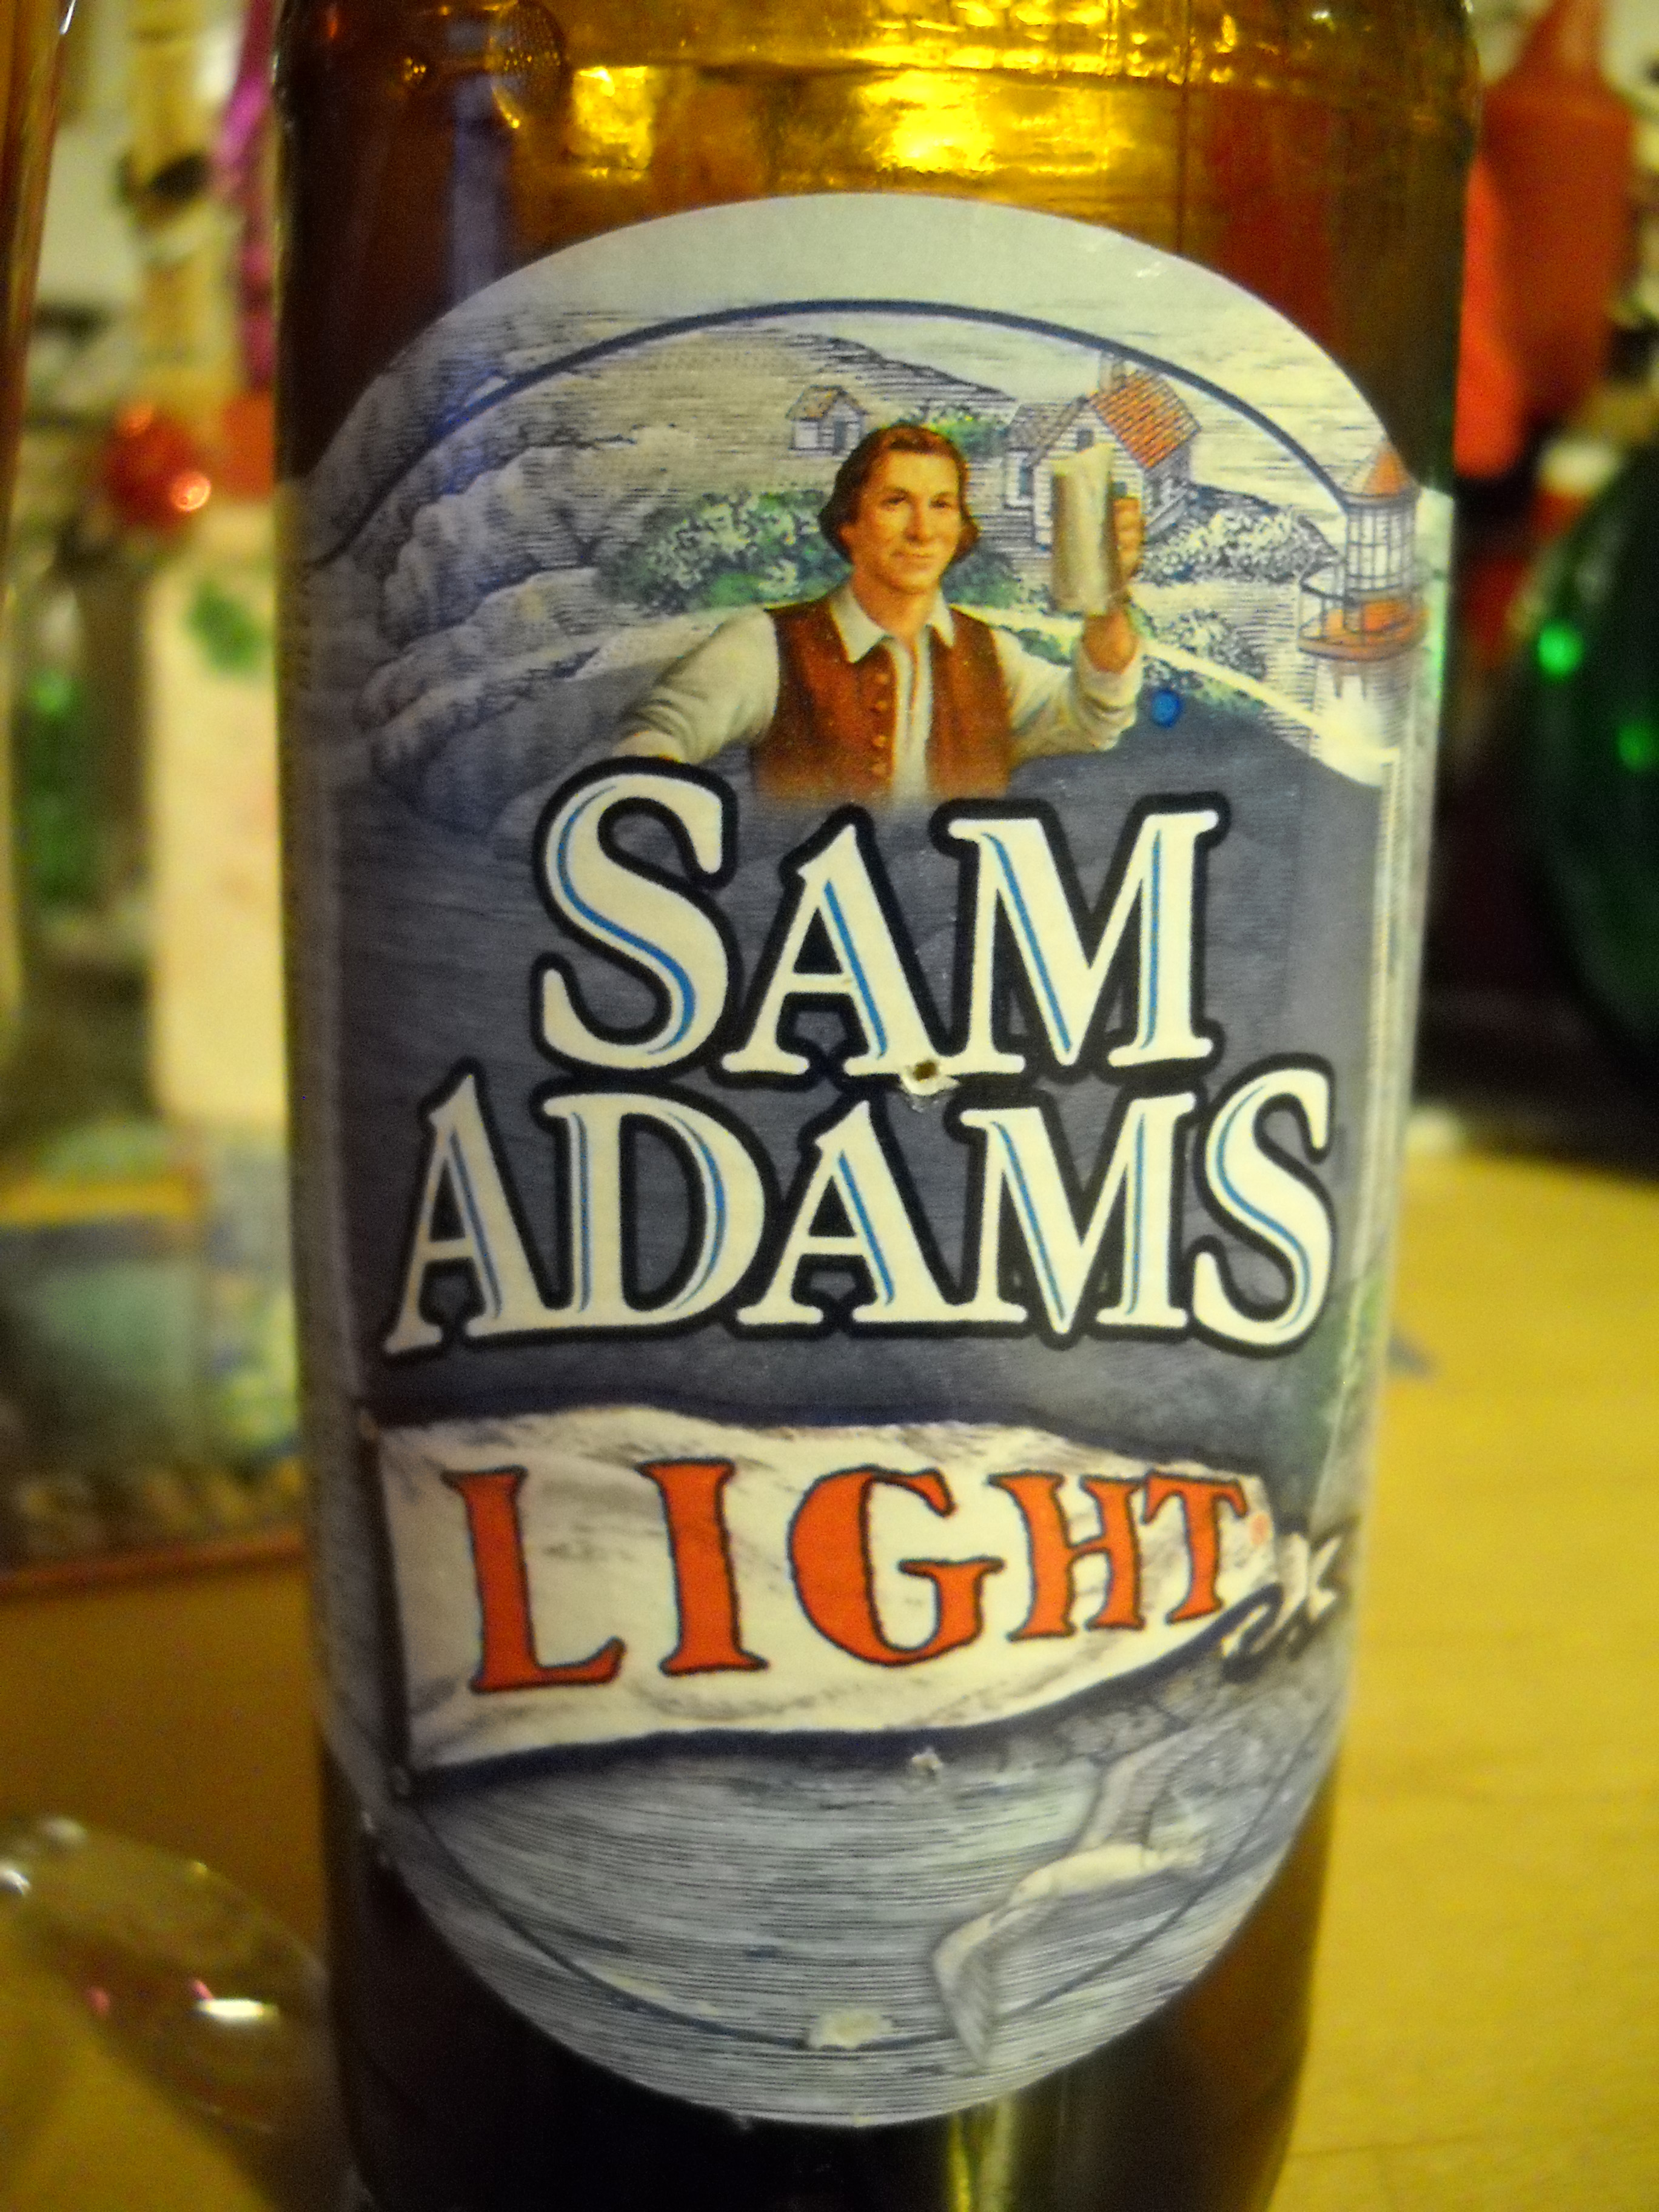 boston beer co light beer decision The boston beer company is a brewer founded in 1984 boston beer company's first brand of beer was named samuel adams (often shortened to sam adams)  sam adams light.